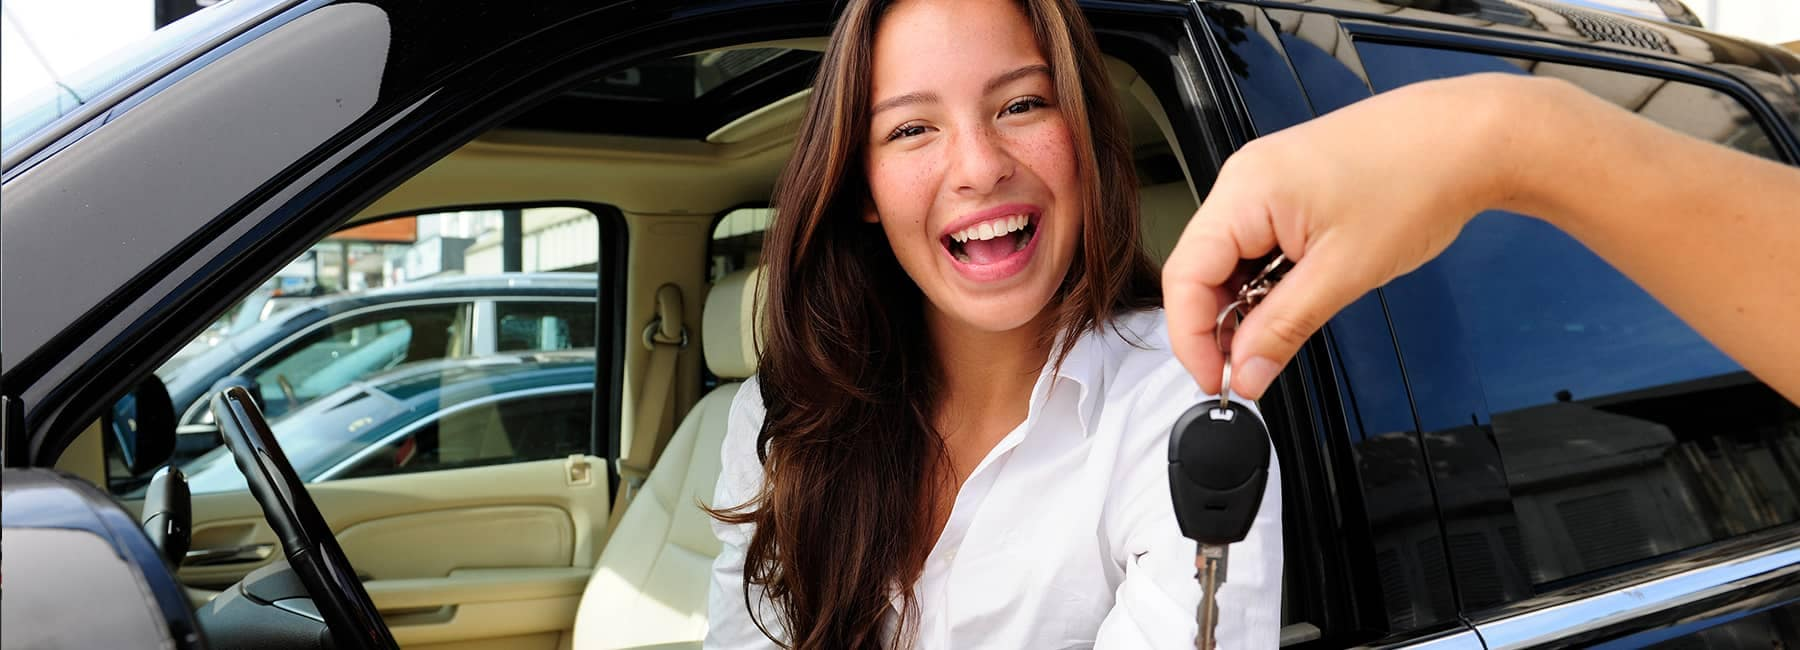 banner image - Woman with Car Keys